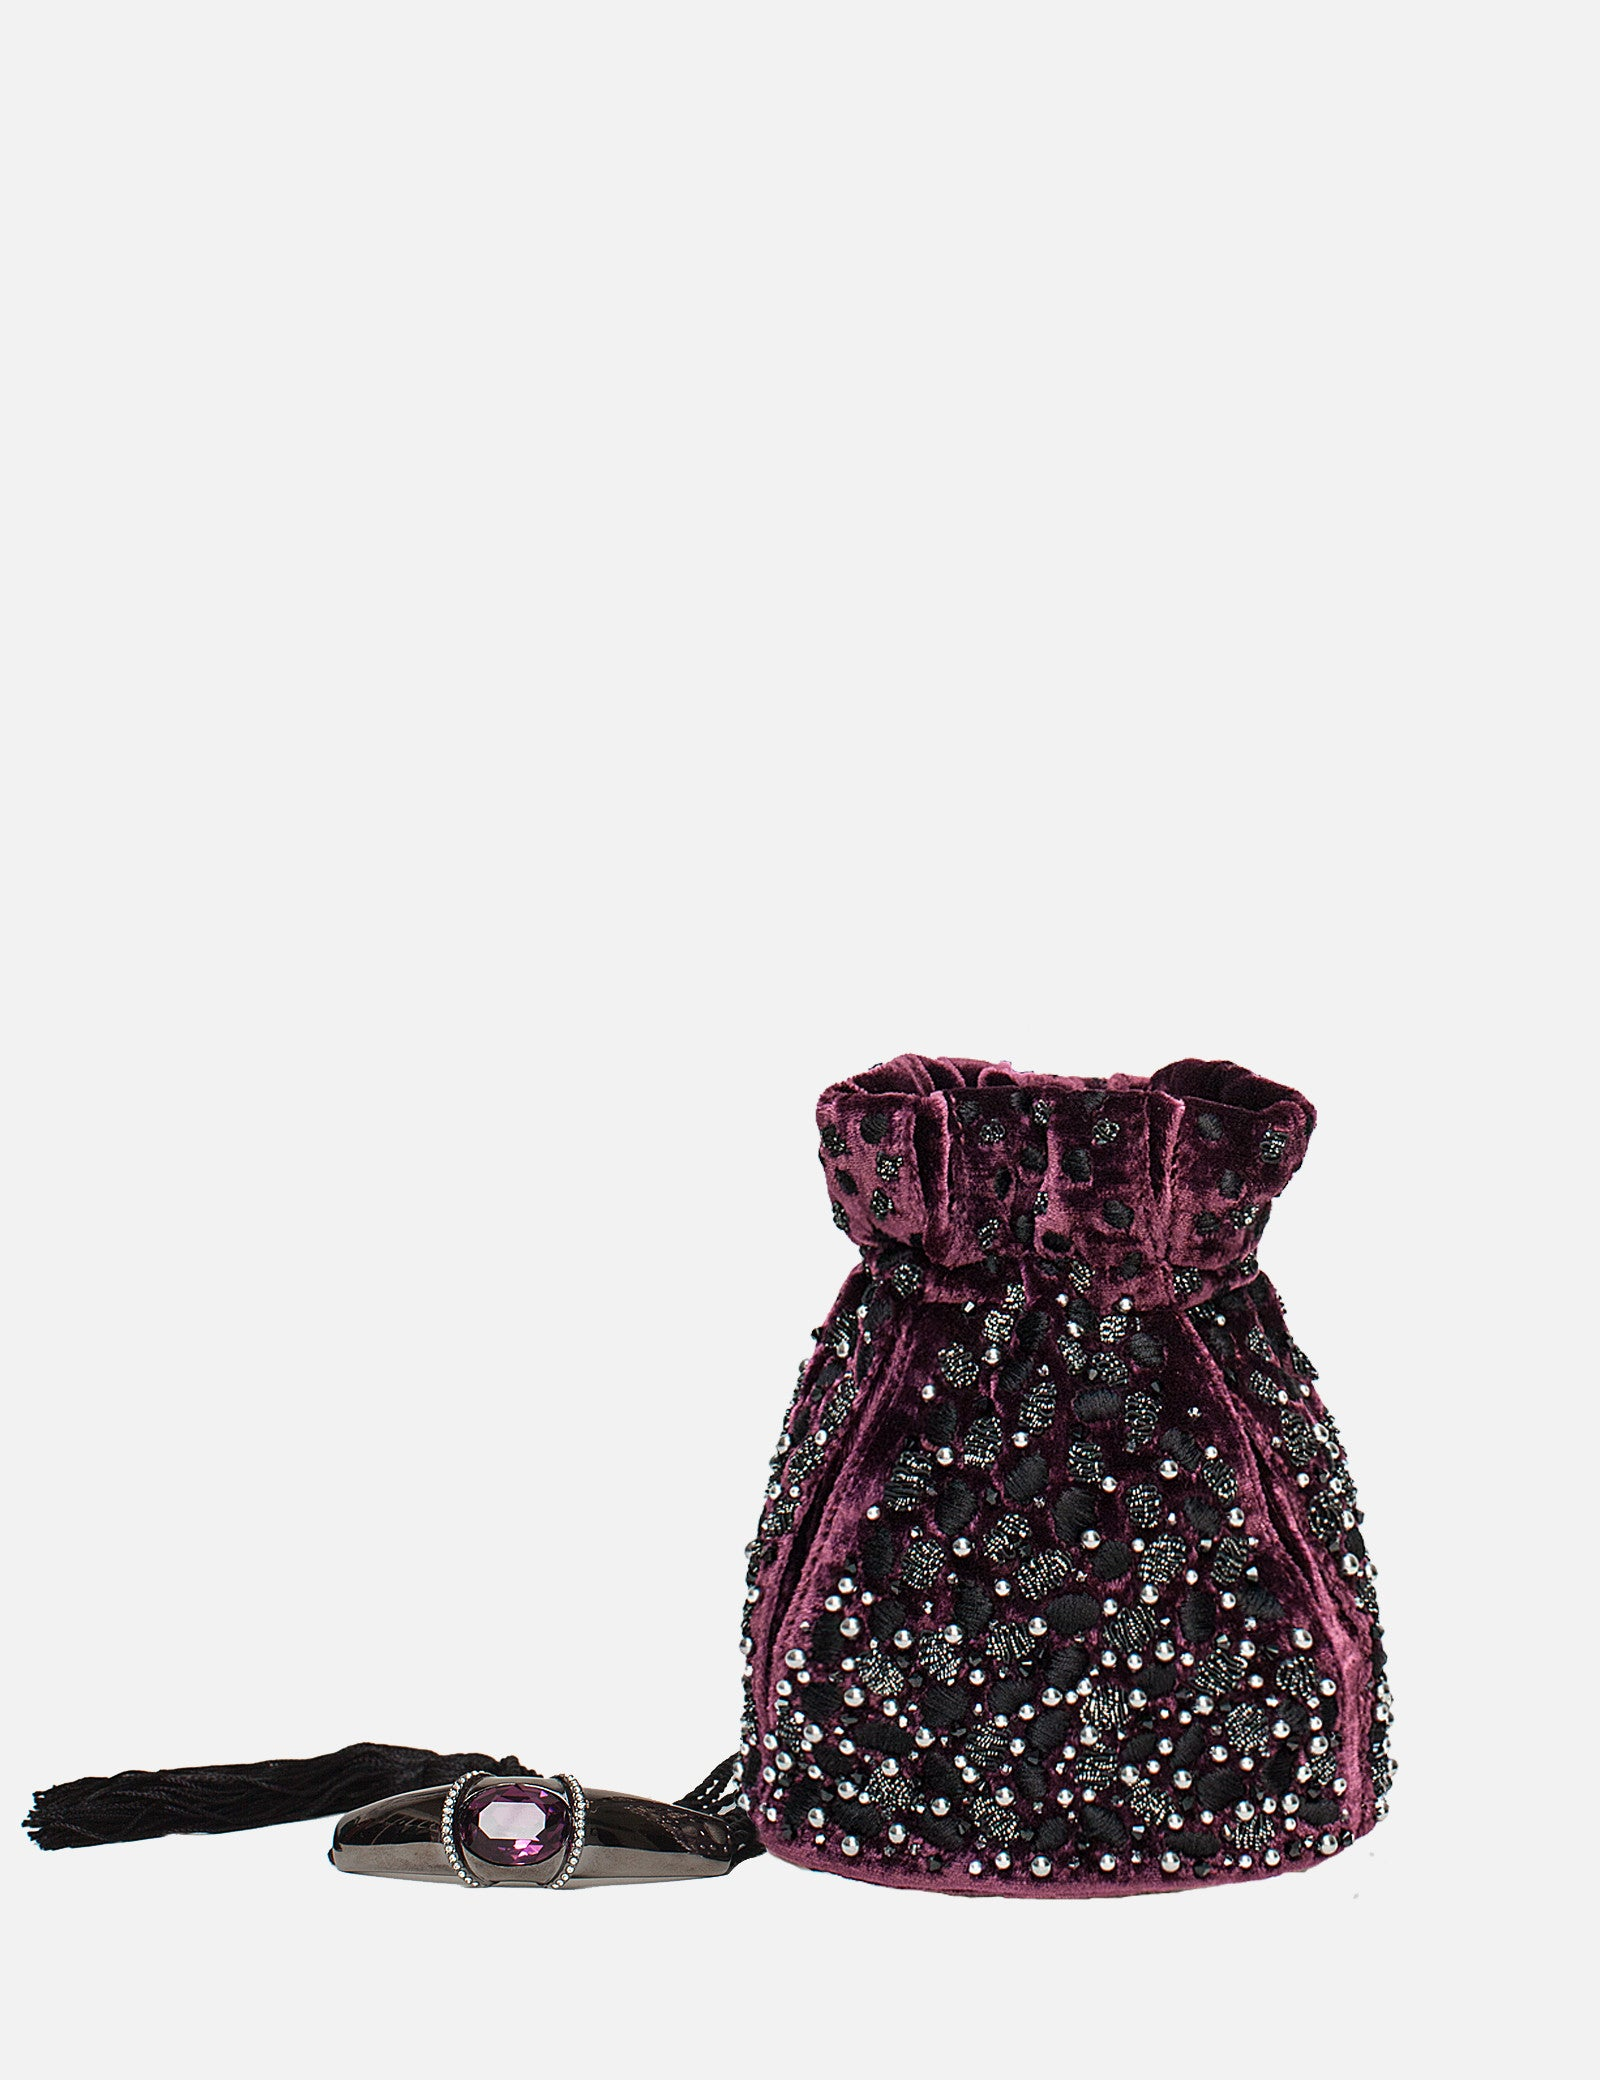 Khirma New York Unique Luxury Designer Velvet Cranberry Pouch with Embroidered Swarovski Crystals. The perfect evening pouch. Designed to to be worn on the shoulder or as a top handle with an adjustable satin drawstring. 15% of all proceeds will go to the Youngarts foundation.